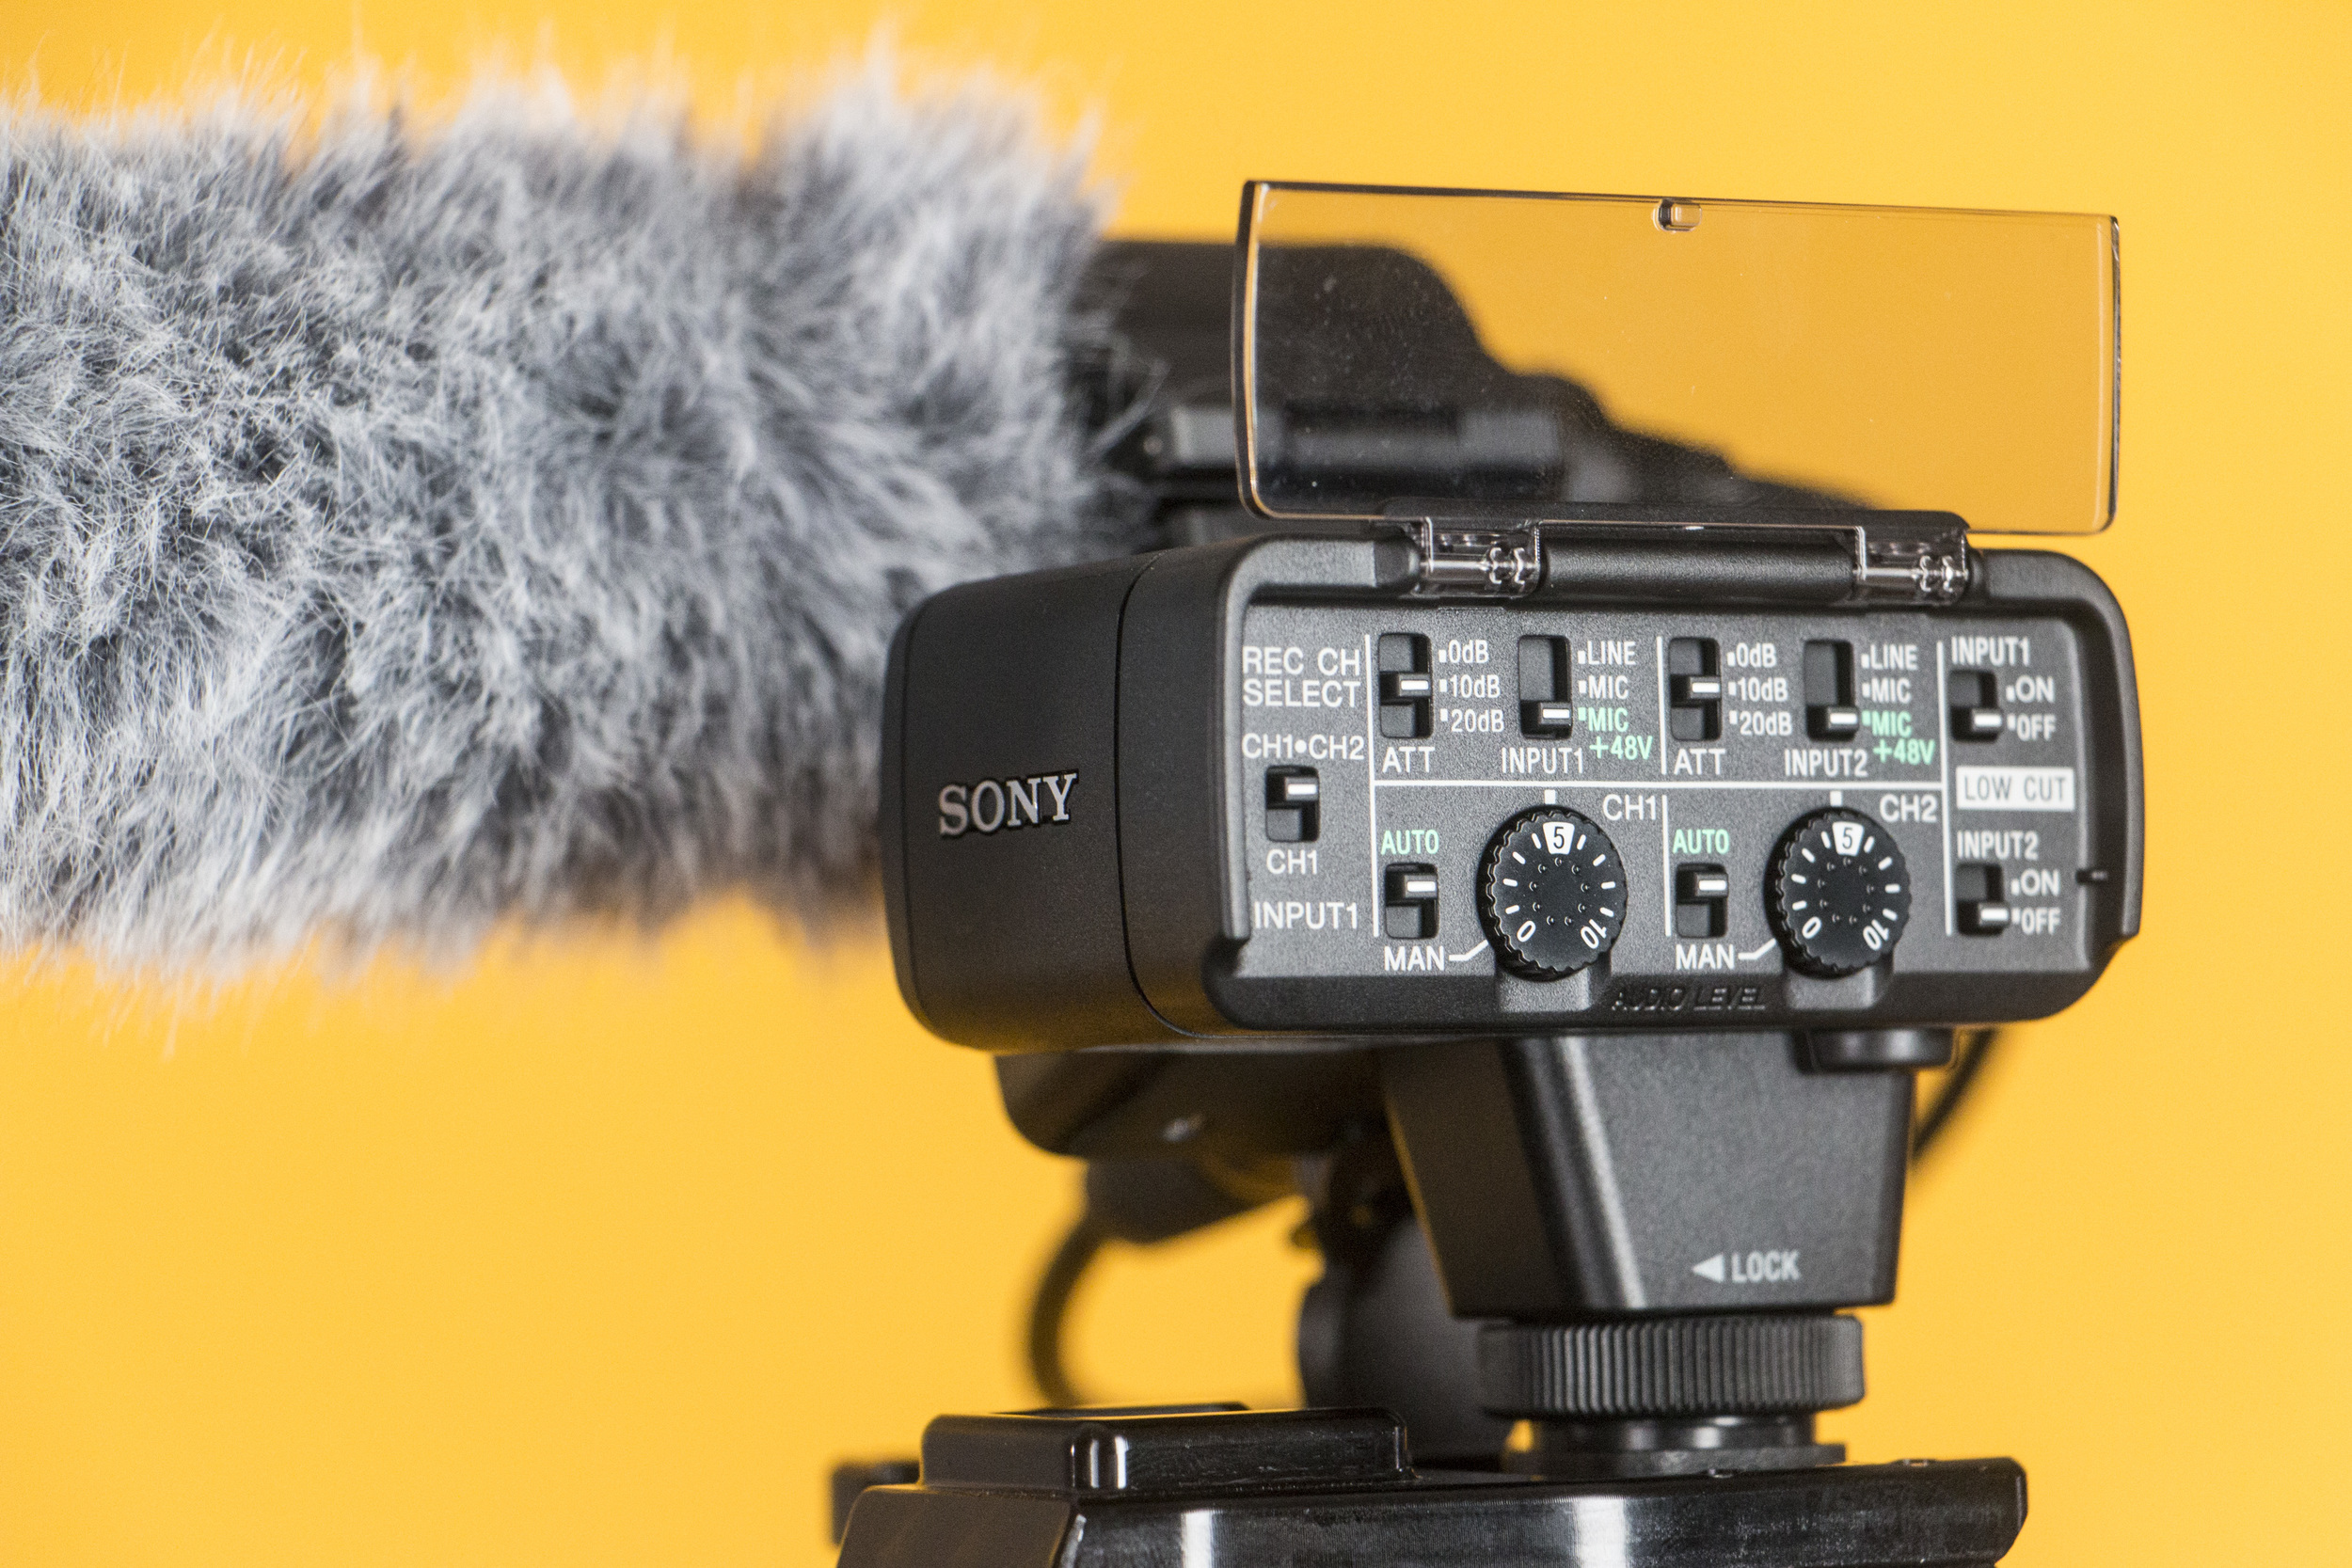 Sound module with audio settings on the Sony XLR K2M